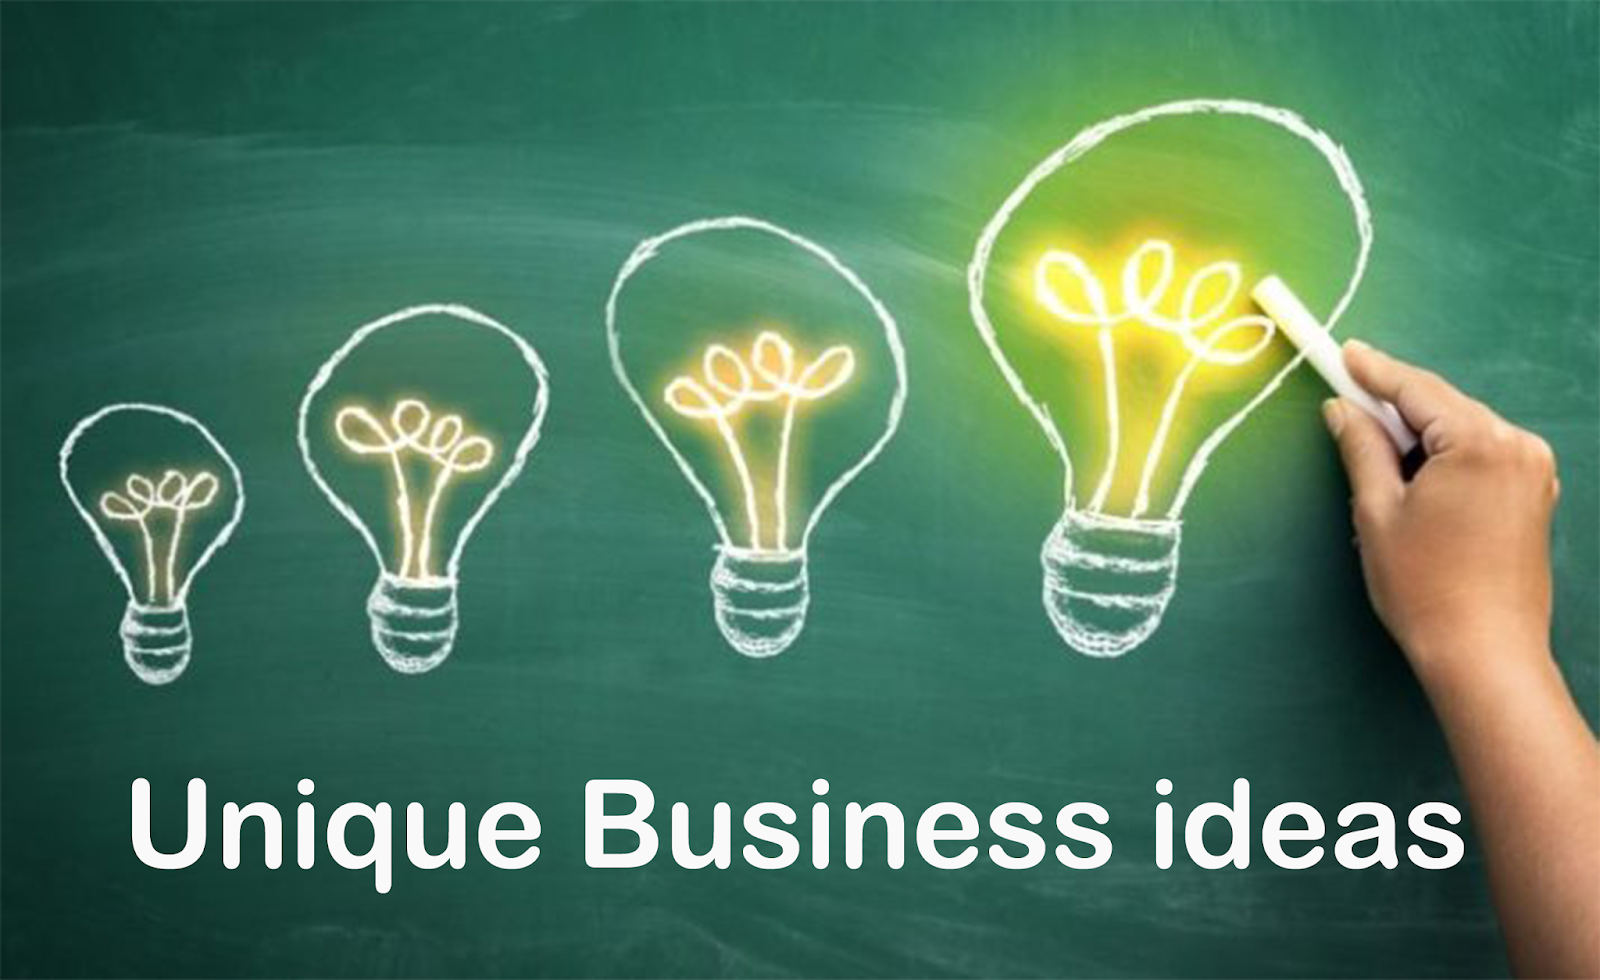 unique business ideas to start from home techmeglobal